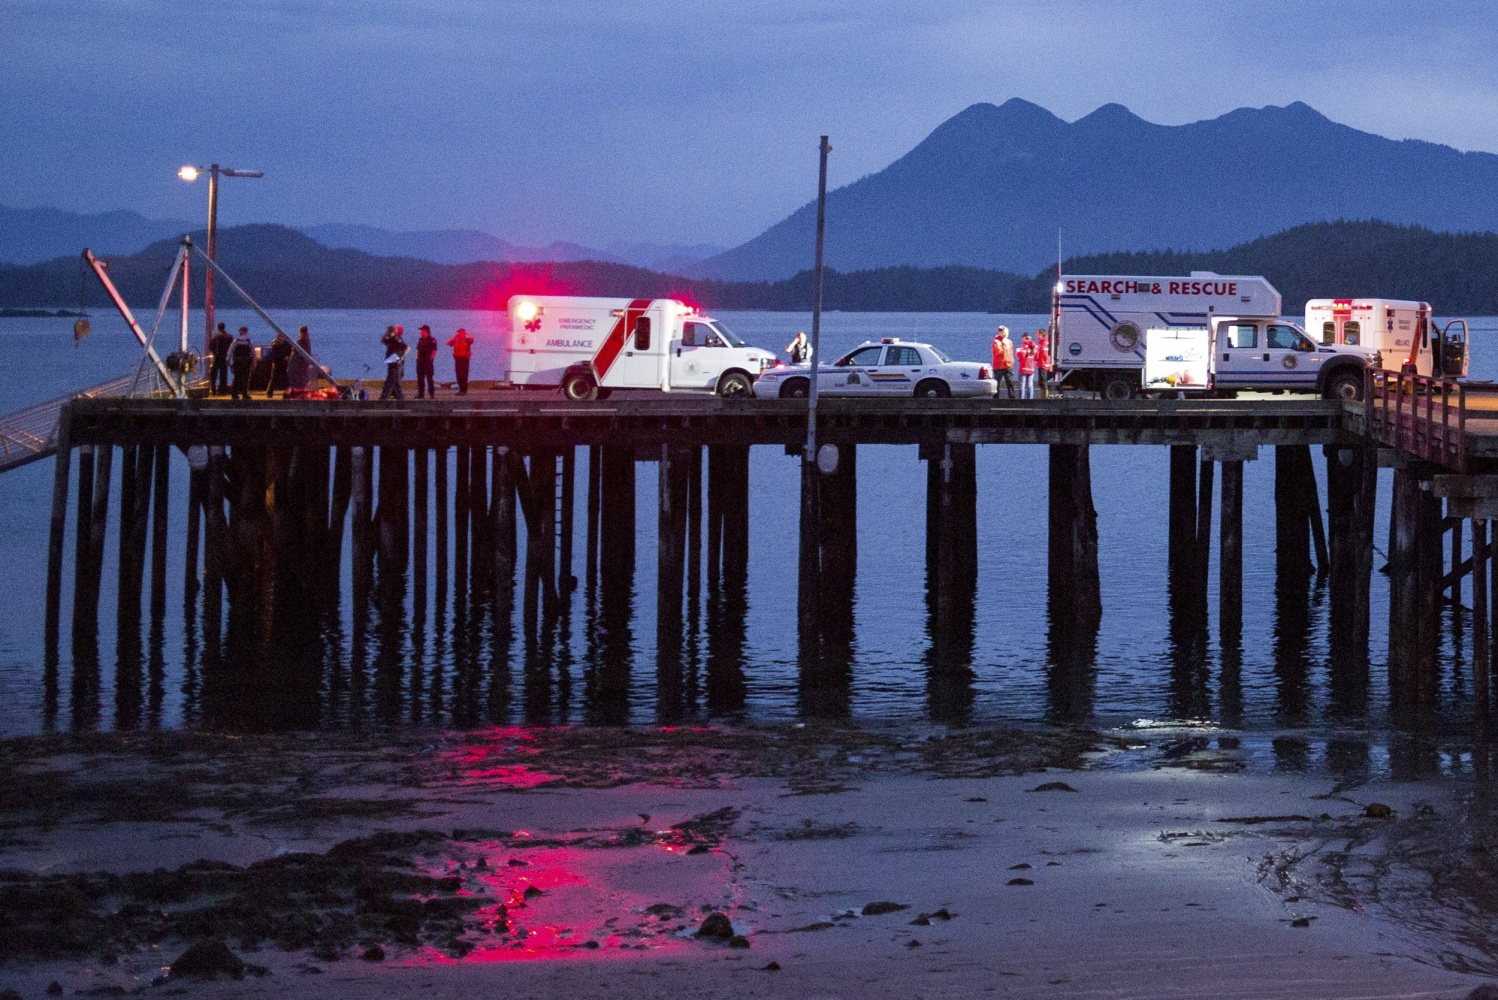 At least 5 killed when whale-watching boat sinks off British Columbia